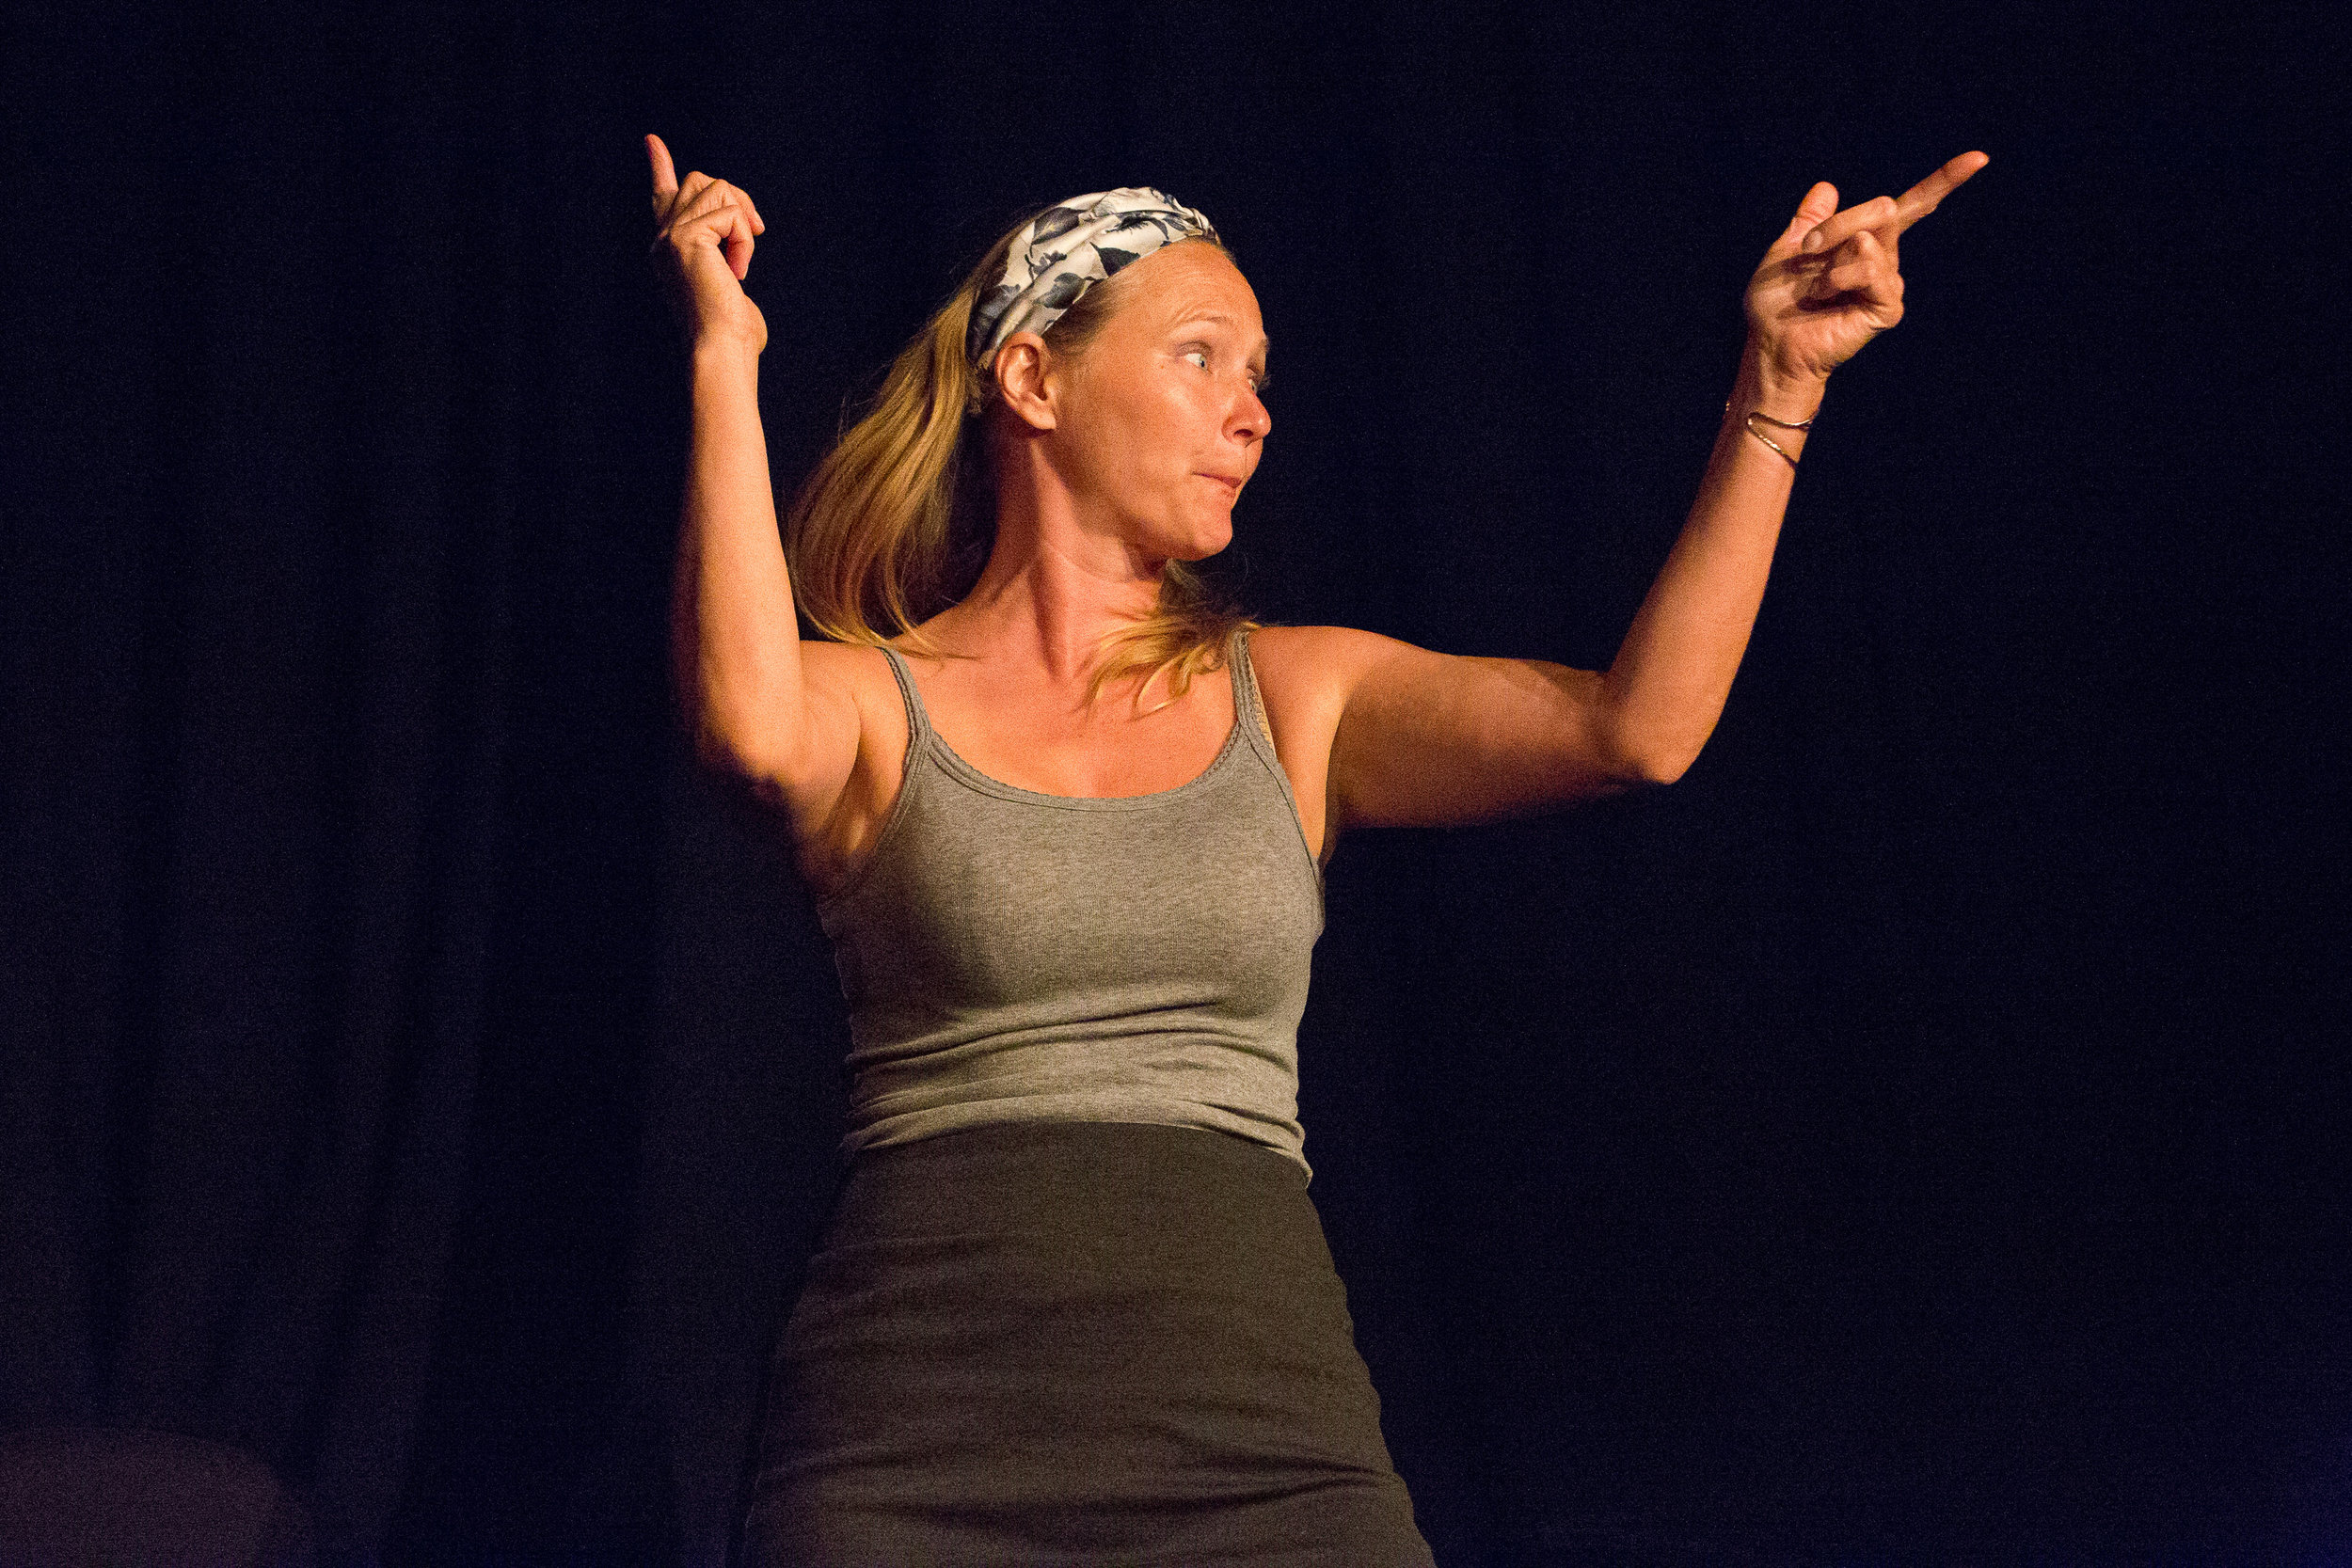 Actress peforming on stage